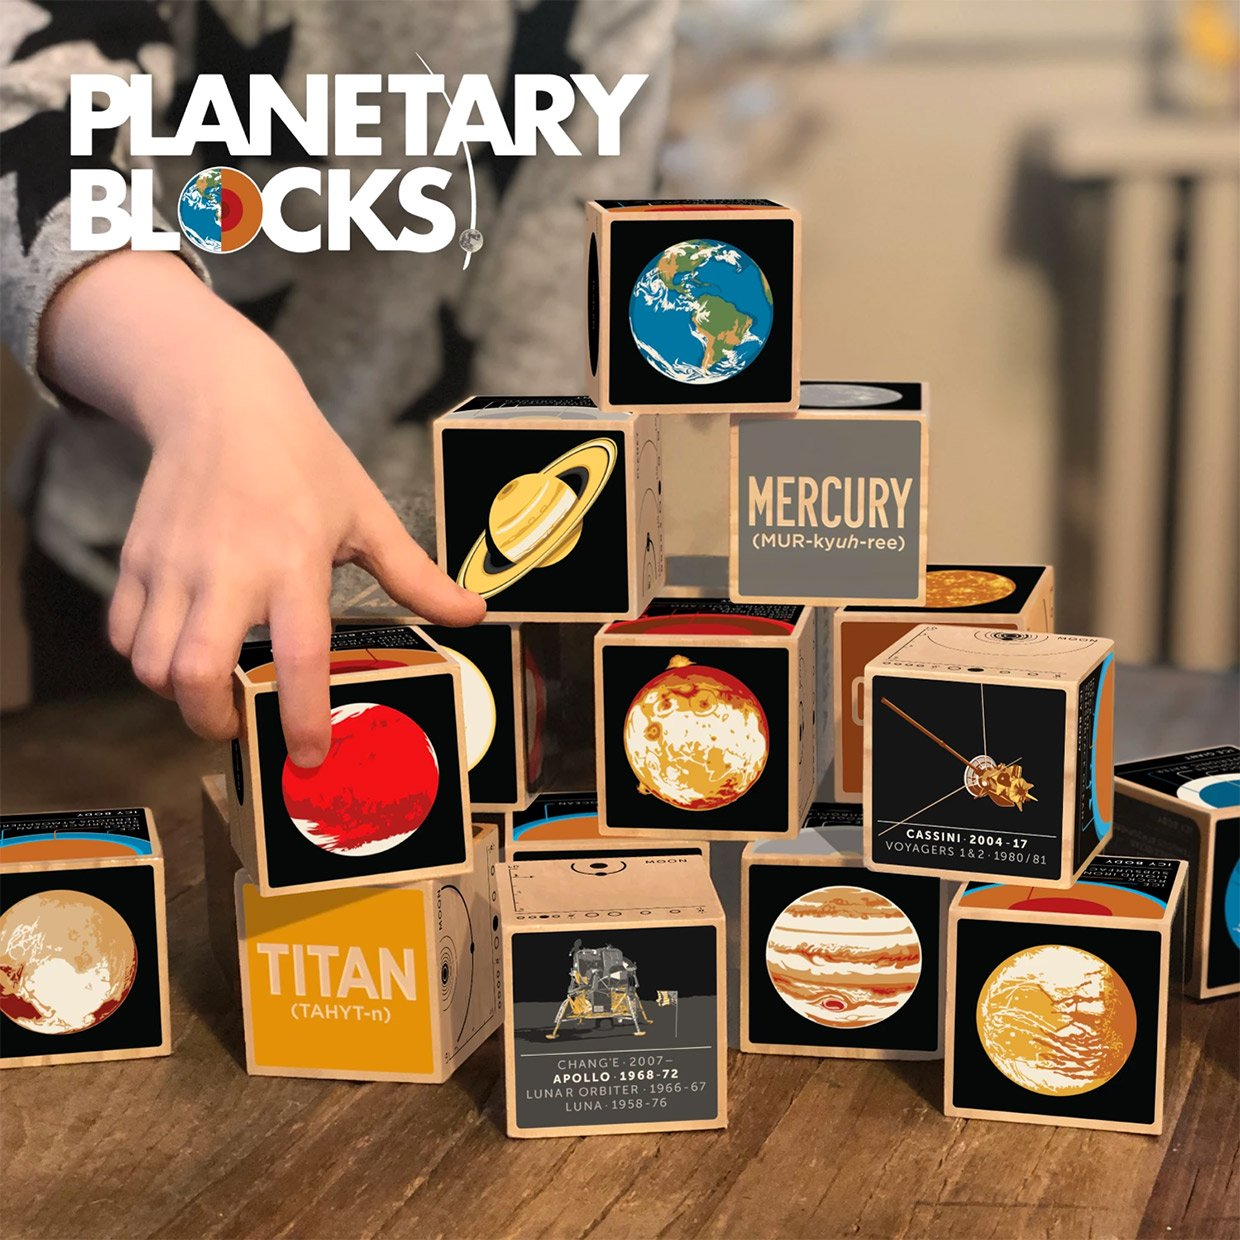 Planetary Blocks